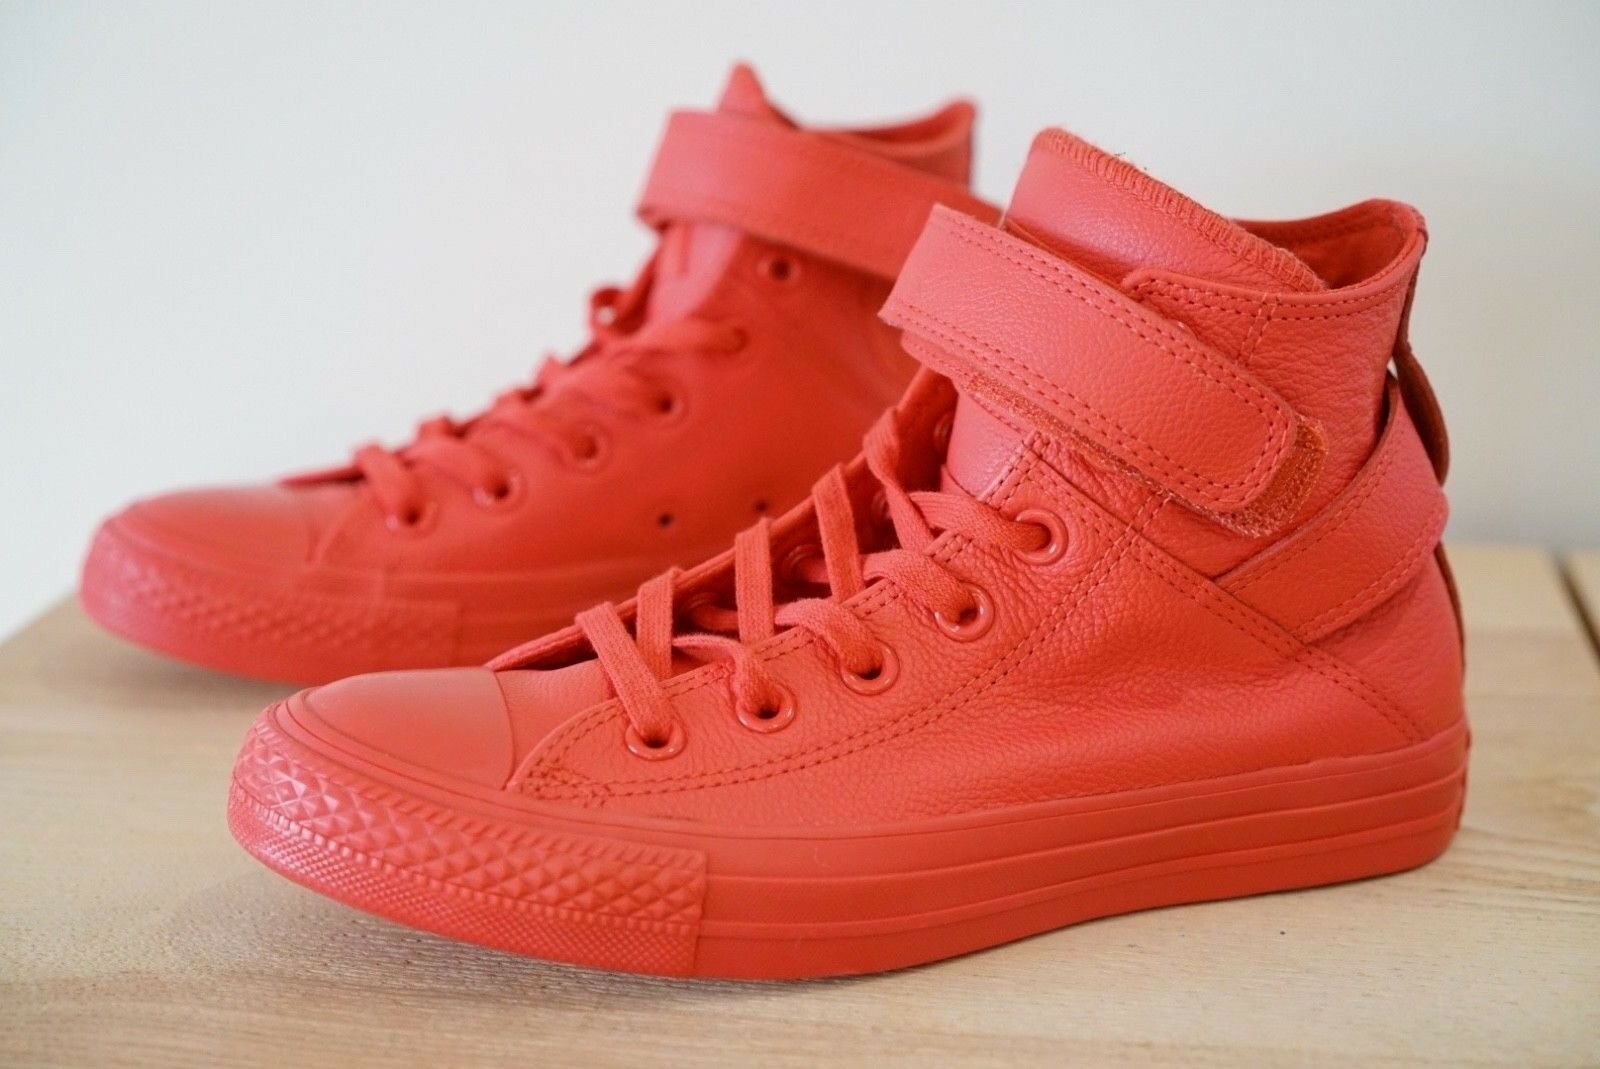 e3b1b0989272 Converse All Star 551584c Unisex Trainers Leather Red Shoes 3 UK